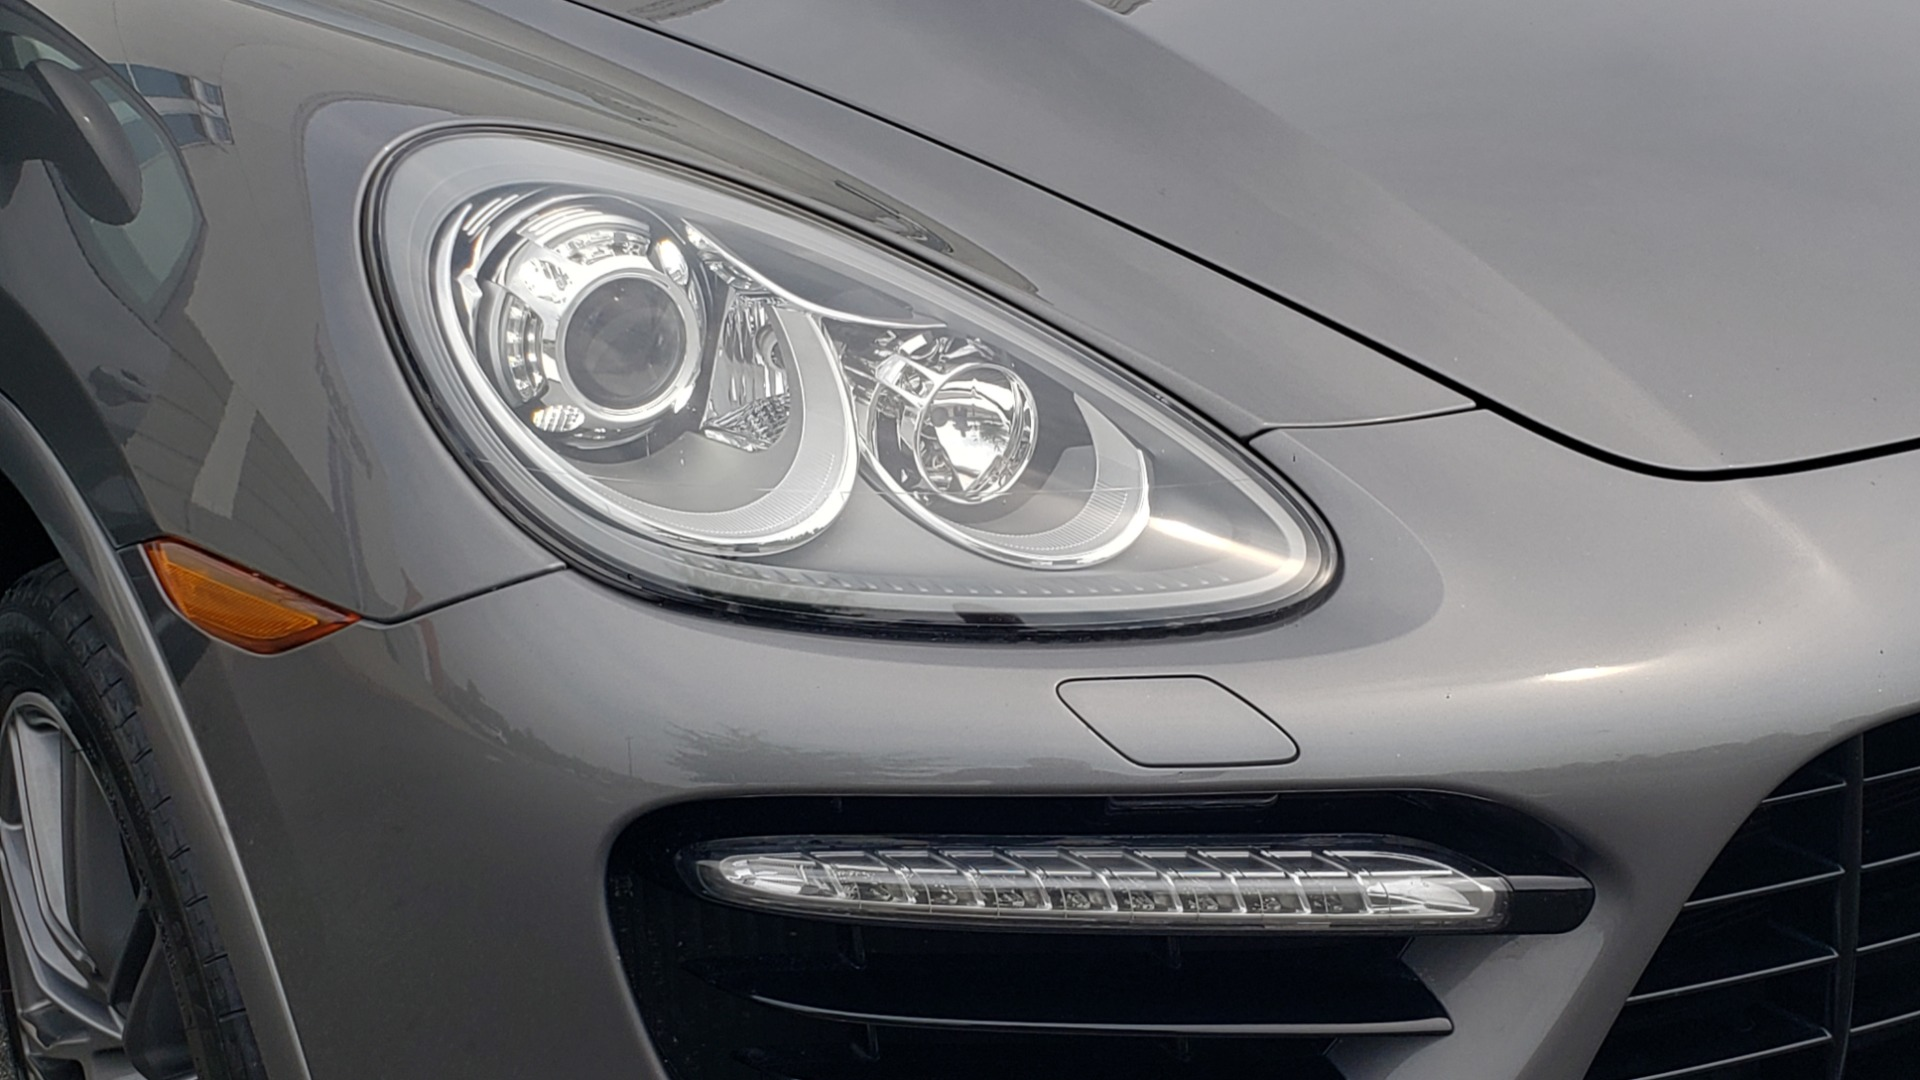 Used 2014 Porsche CAYENNE TURBO S / AWD / NAV / BOSE / PANO-ROOF / LCA / REARVIEW for sale Sold at Formula Imports in Charlotte NC 28227 26